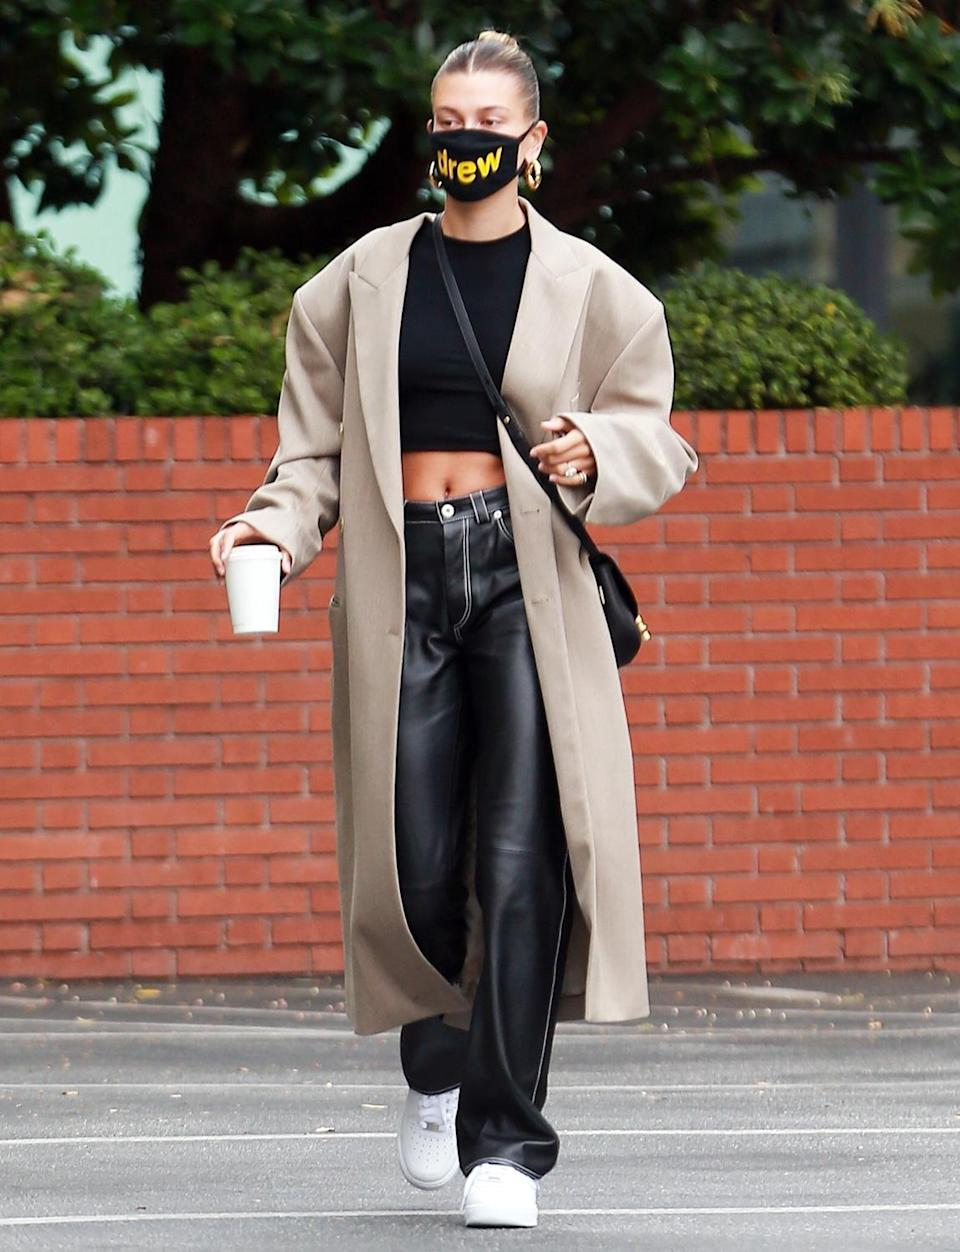 <p>Back from a photo shoot in Italy, Hailey Bieber makes a Sunday morning trip to Blue Bottle Cafe in Beverly Hills while looking chic in a sleek bun and long coat.</p>